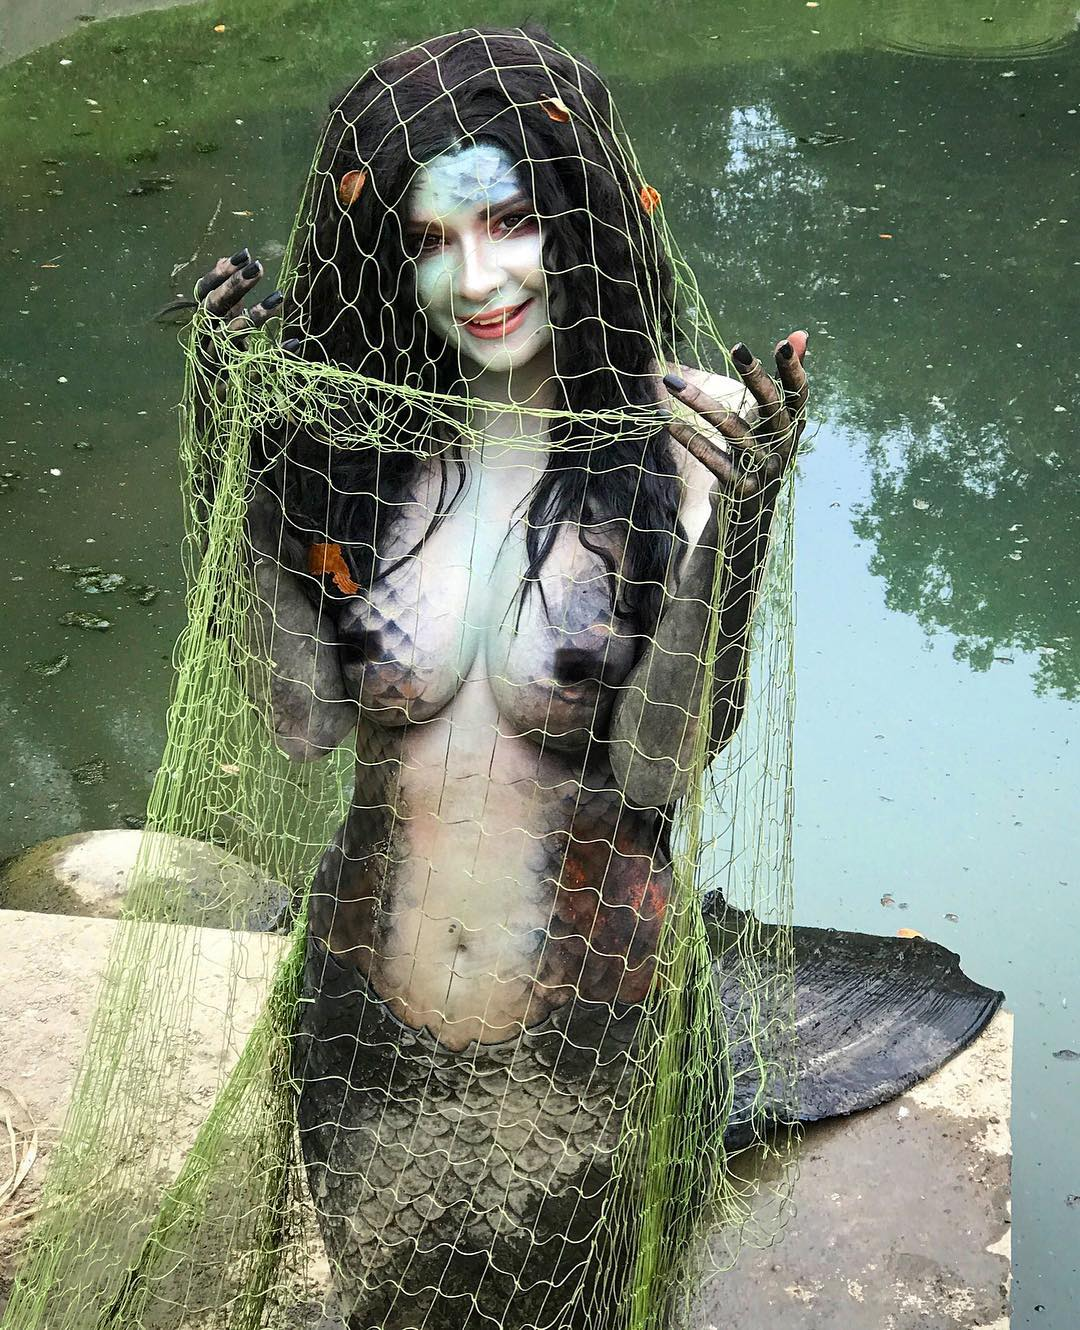 Jannet Incosplay Sexy Boosb Pictures on Fish Look